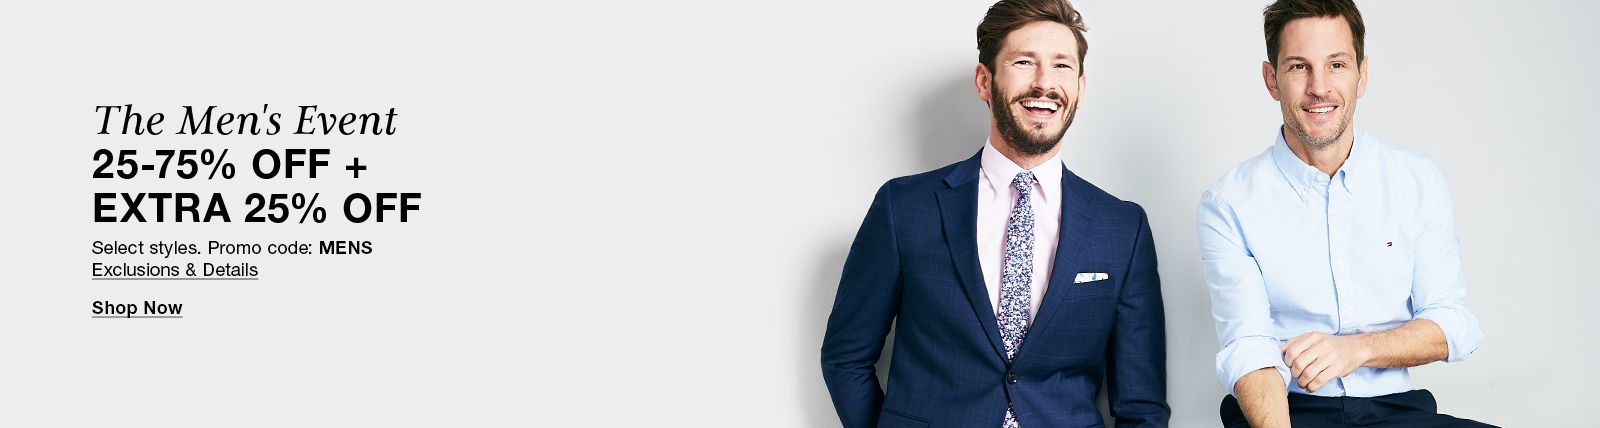 The Men's Event 25-75% Off + Extra 25 % Off,  Shop Now